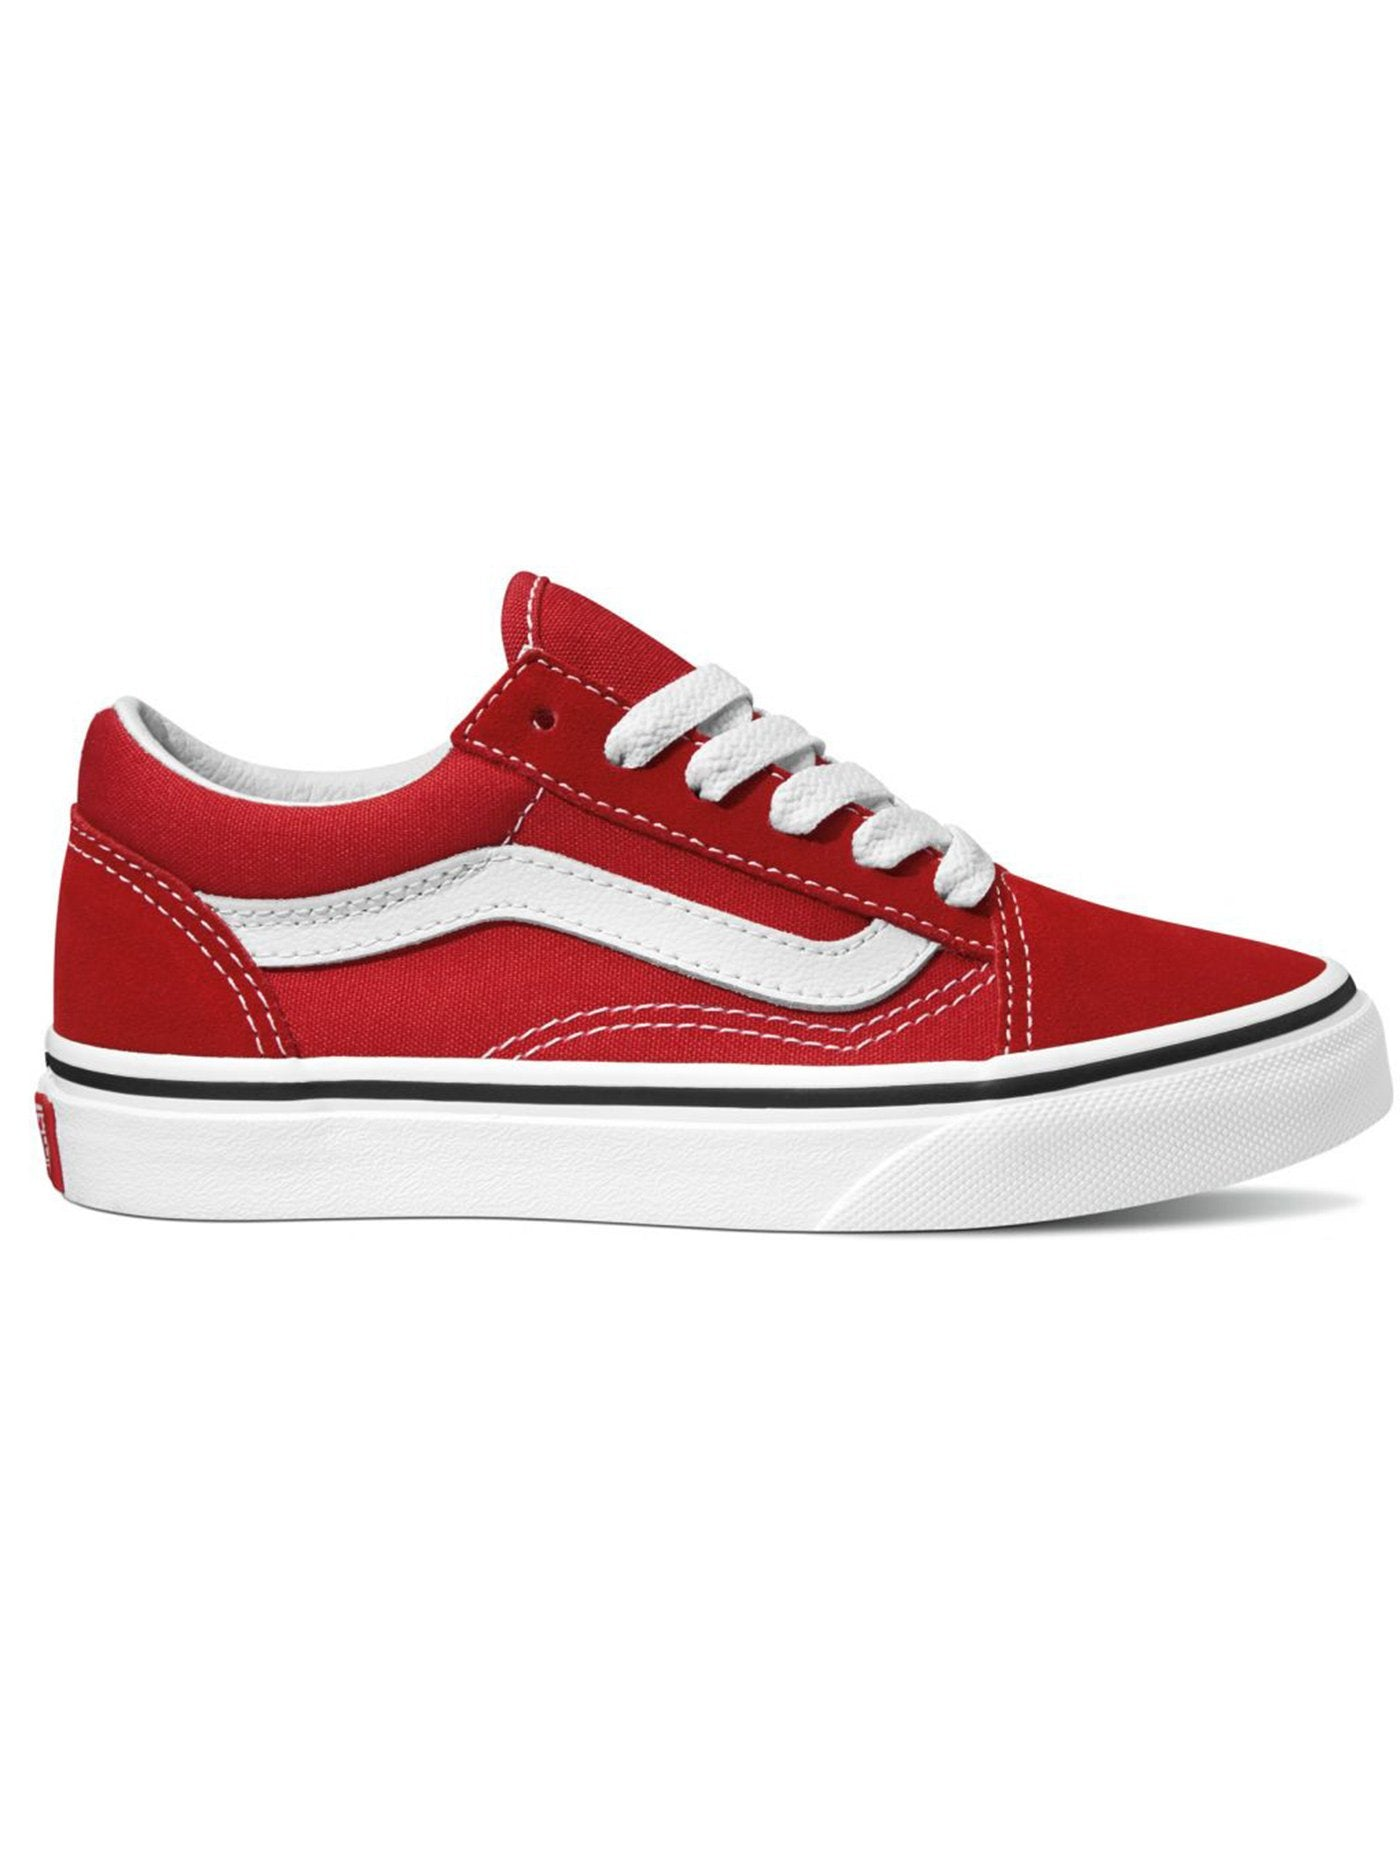 RACING RED/TRUE WHT (JV6)